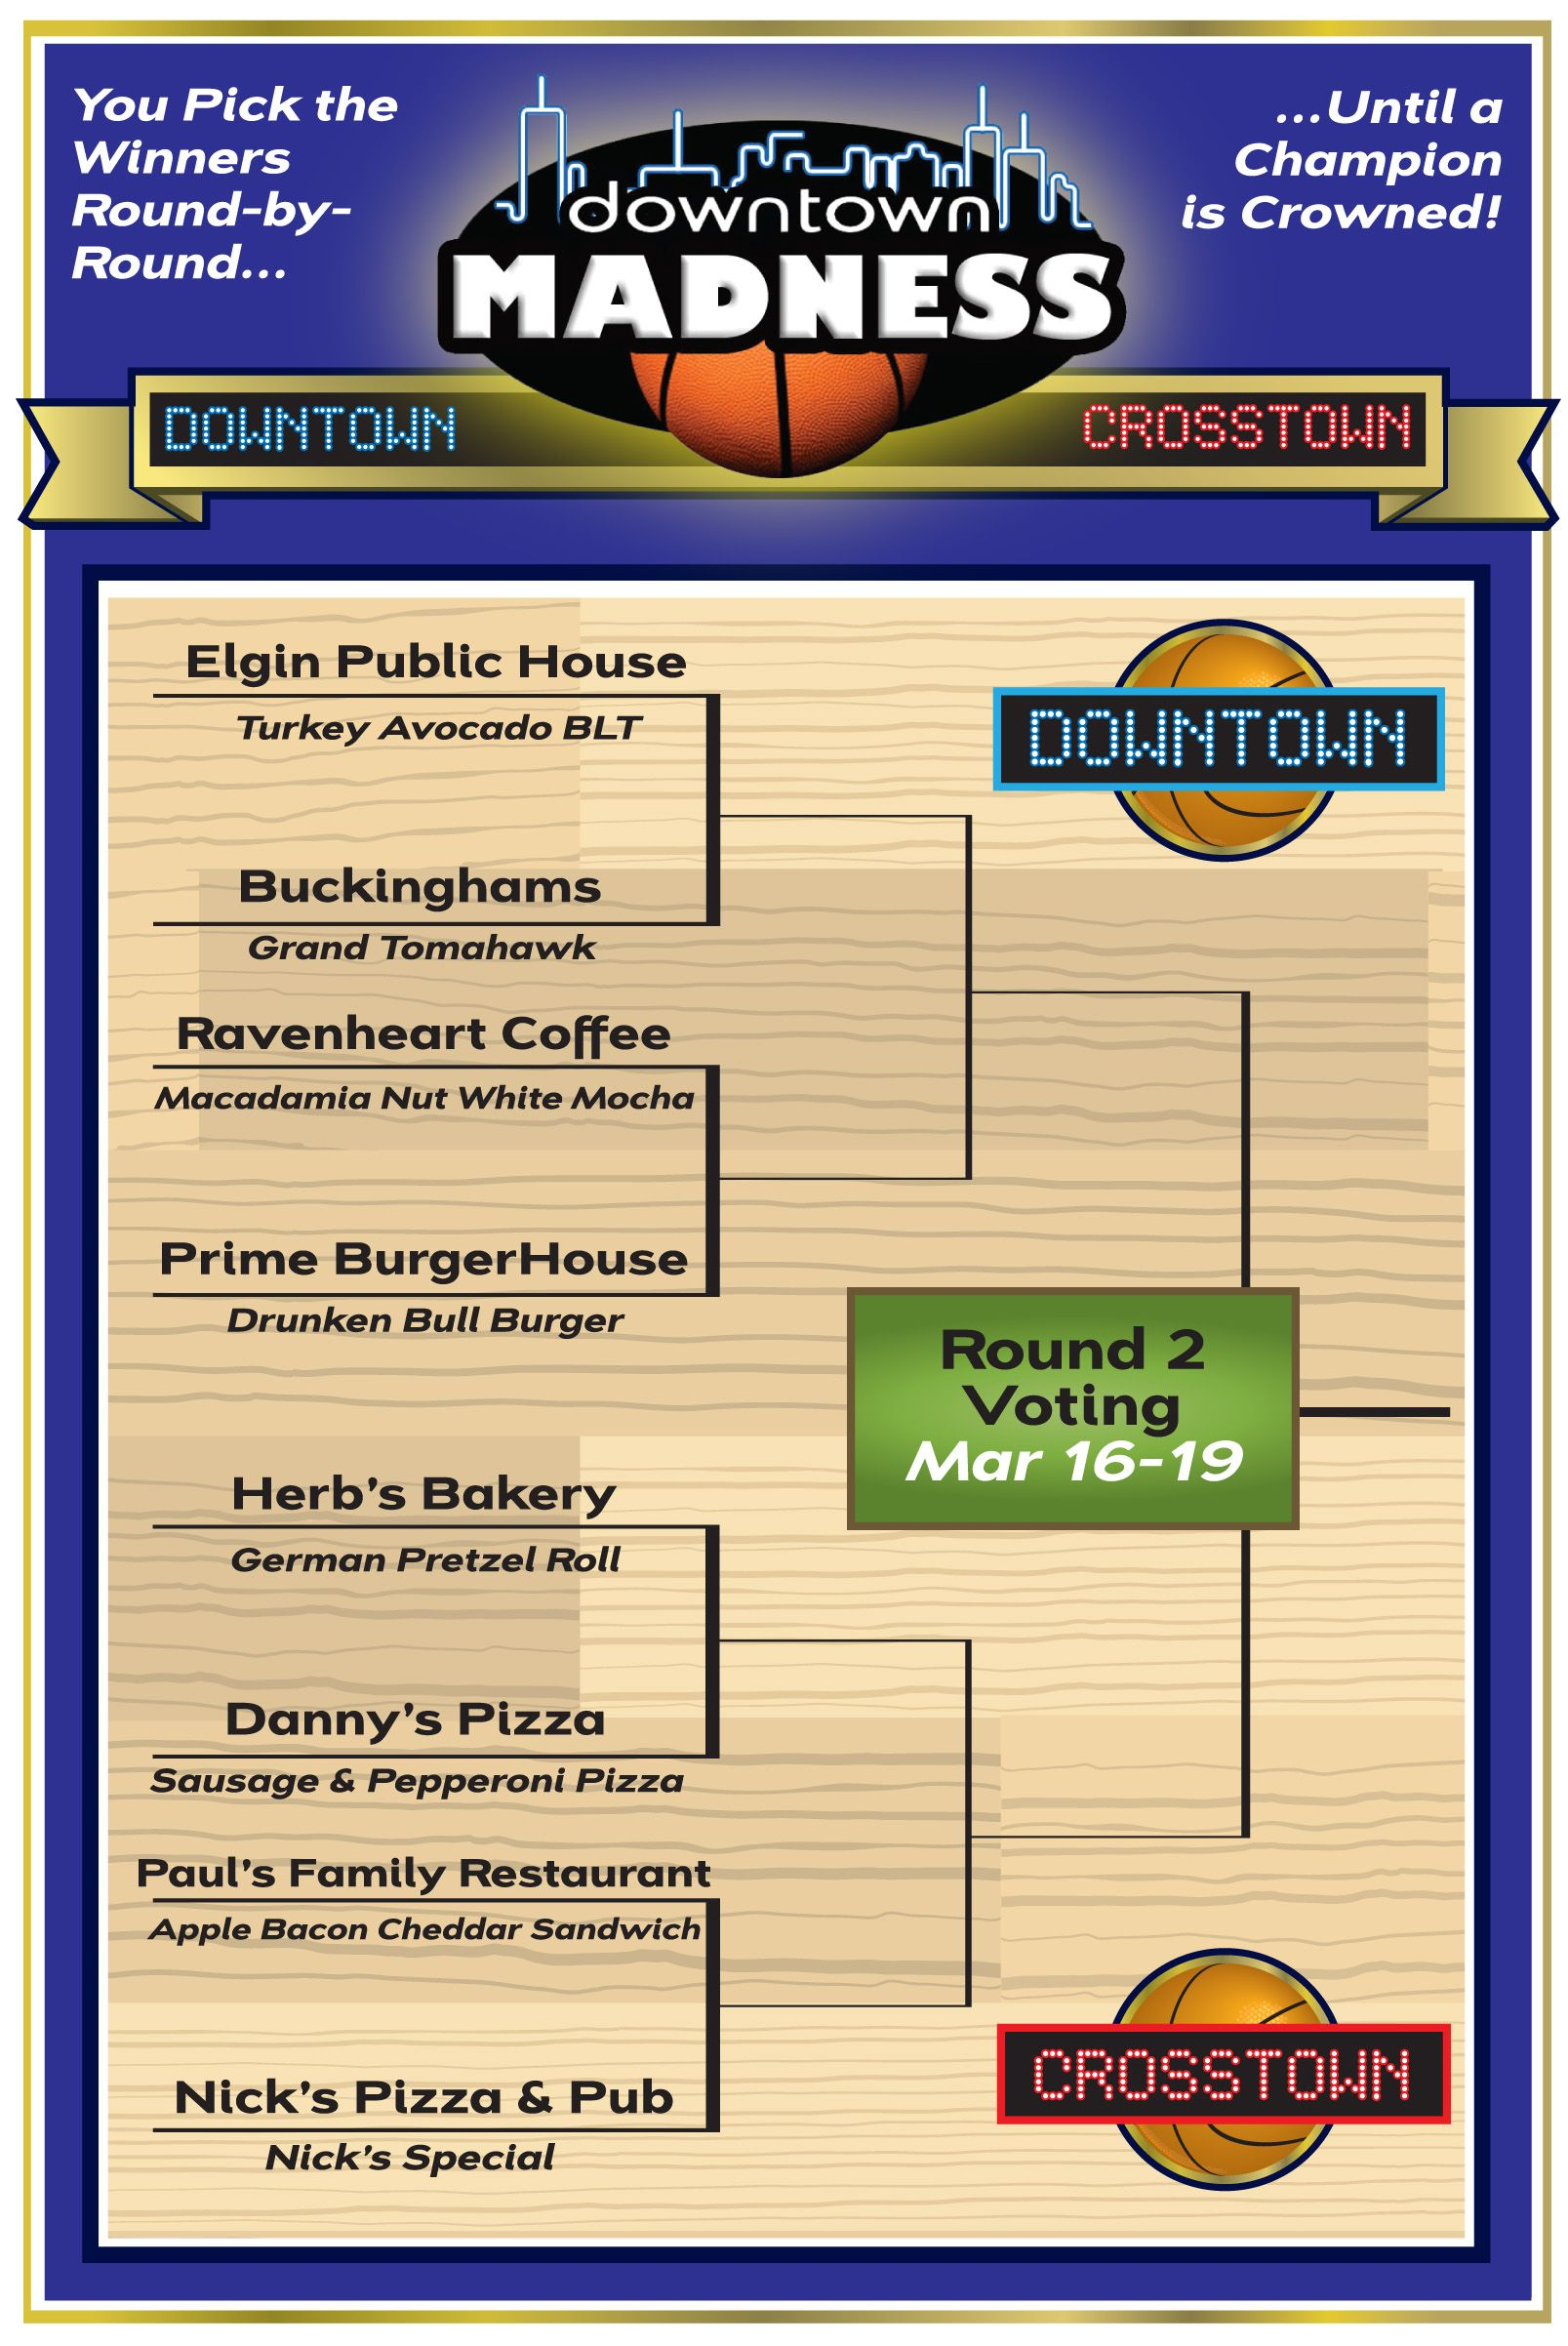 Second Round voting in Downtown Madness: Downtown vs. Crosstown tips off Friday, March 16 at Noon thru Monday, March 19 at 5PM. Vote for your favorite Elgin eateries all month long at www.DowntownElgin.com.